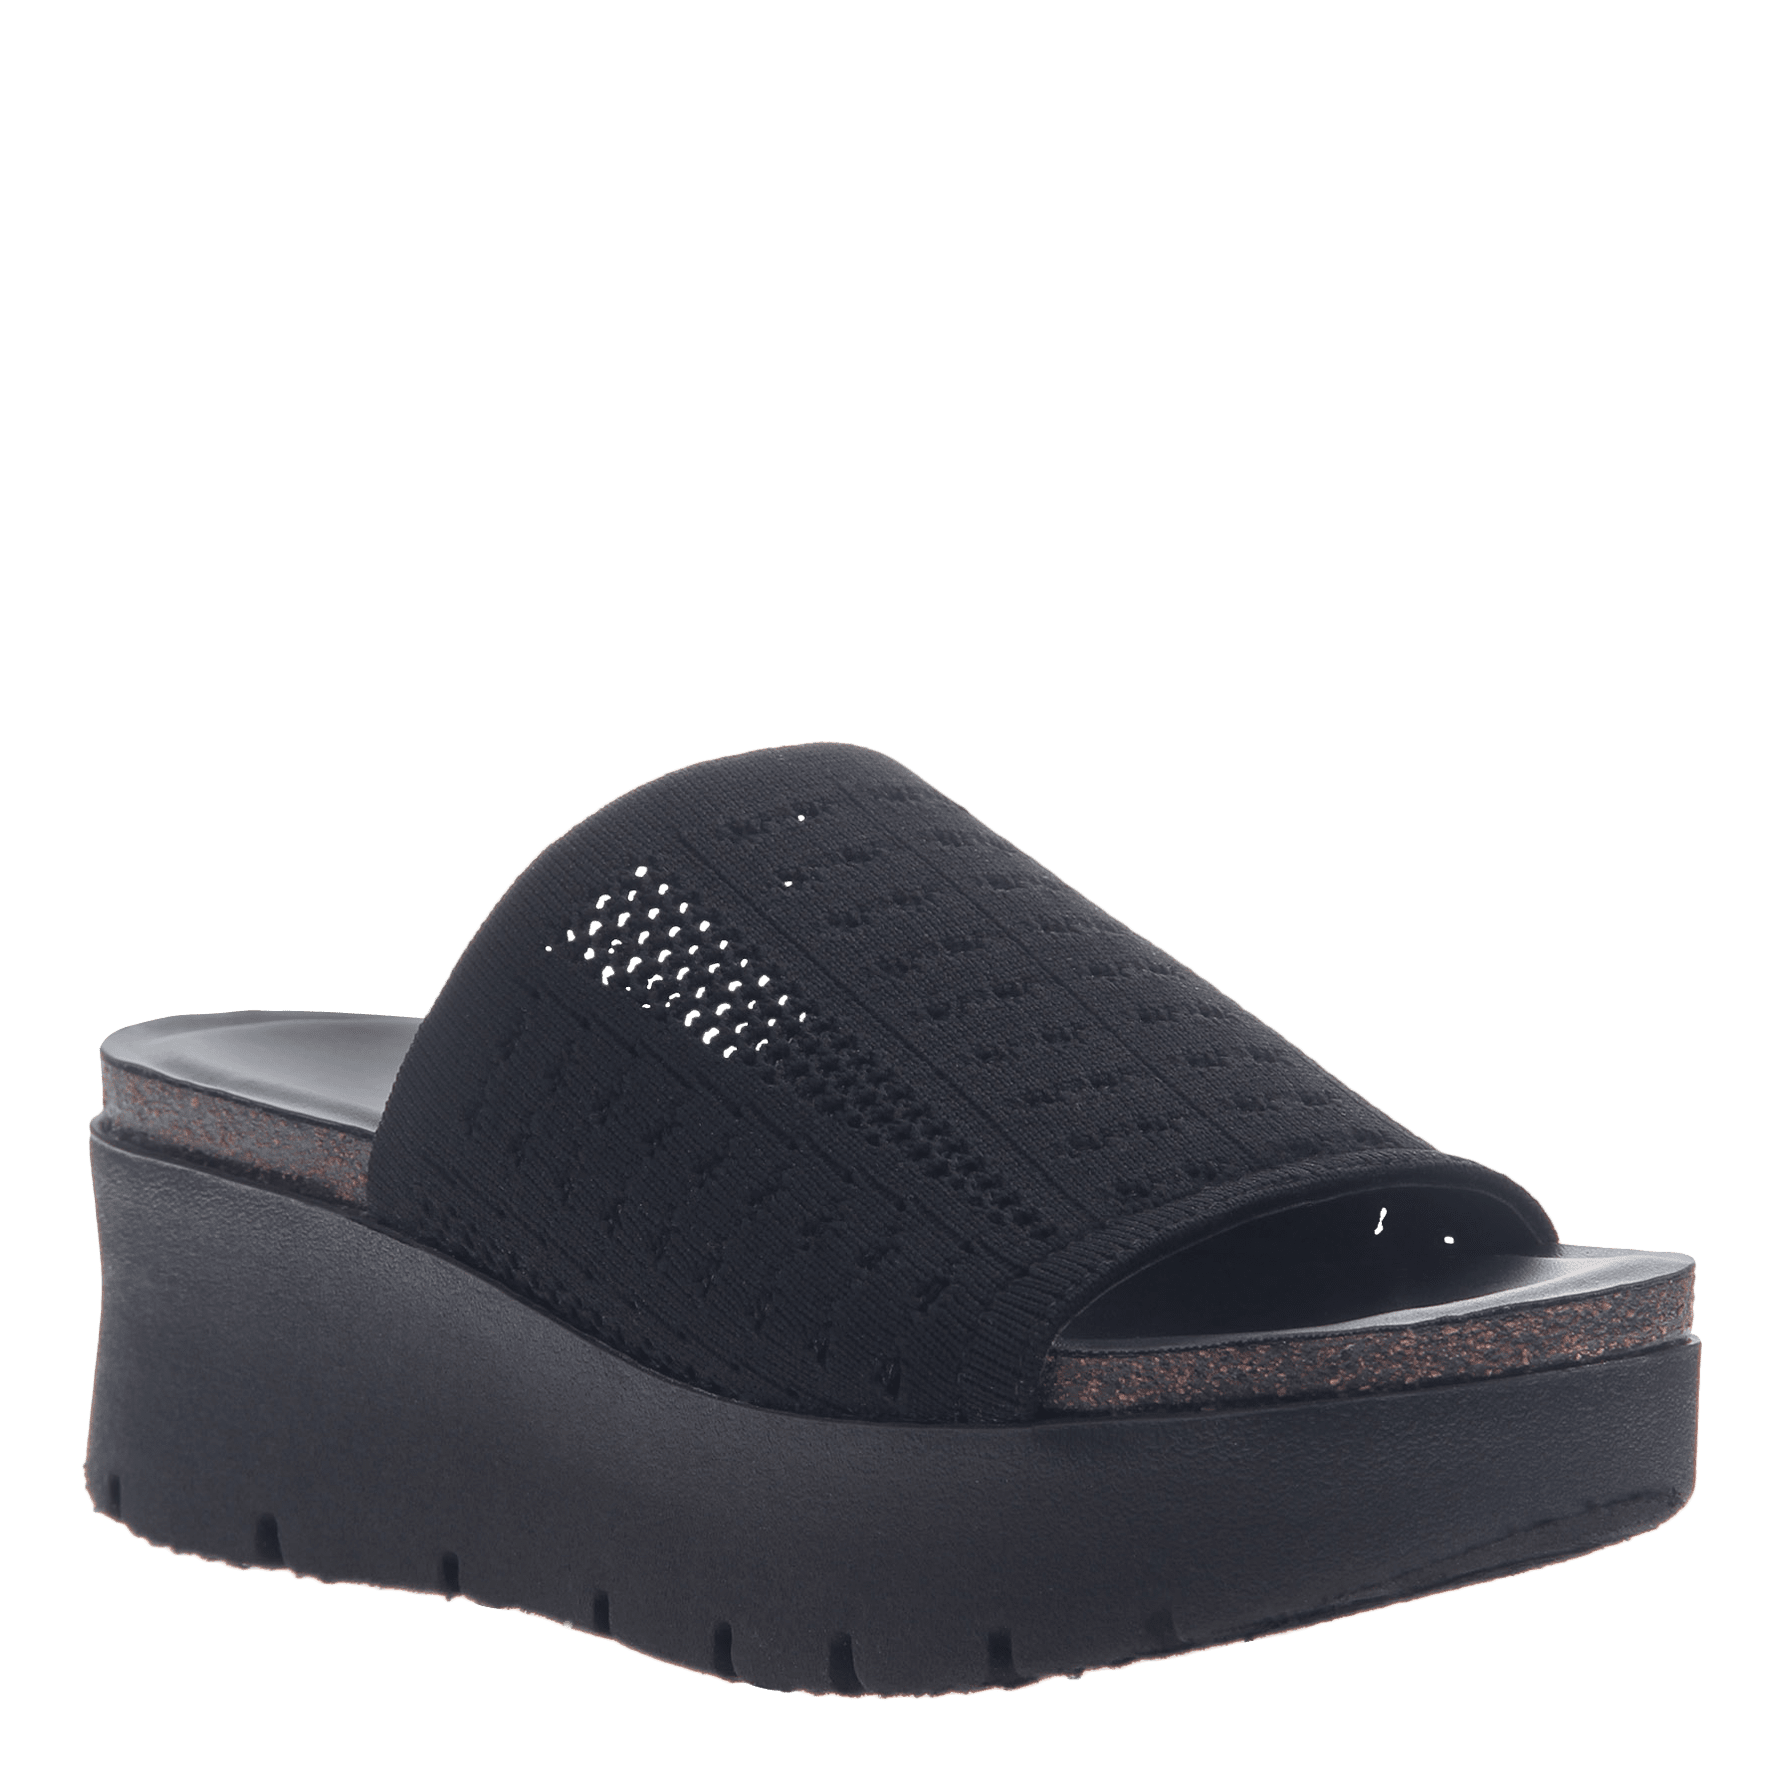 4df5669566 Gravity in Black Wedge Sandals | Women's Shoes by OTBT